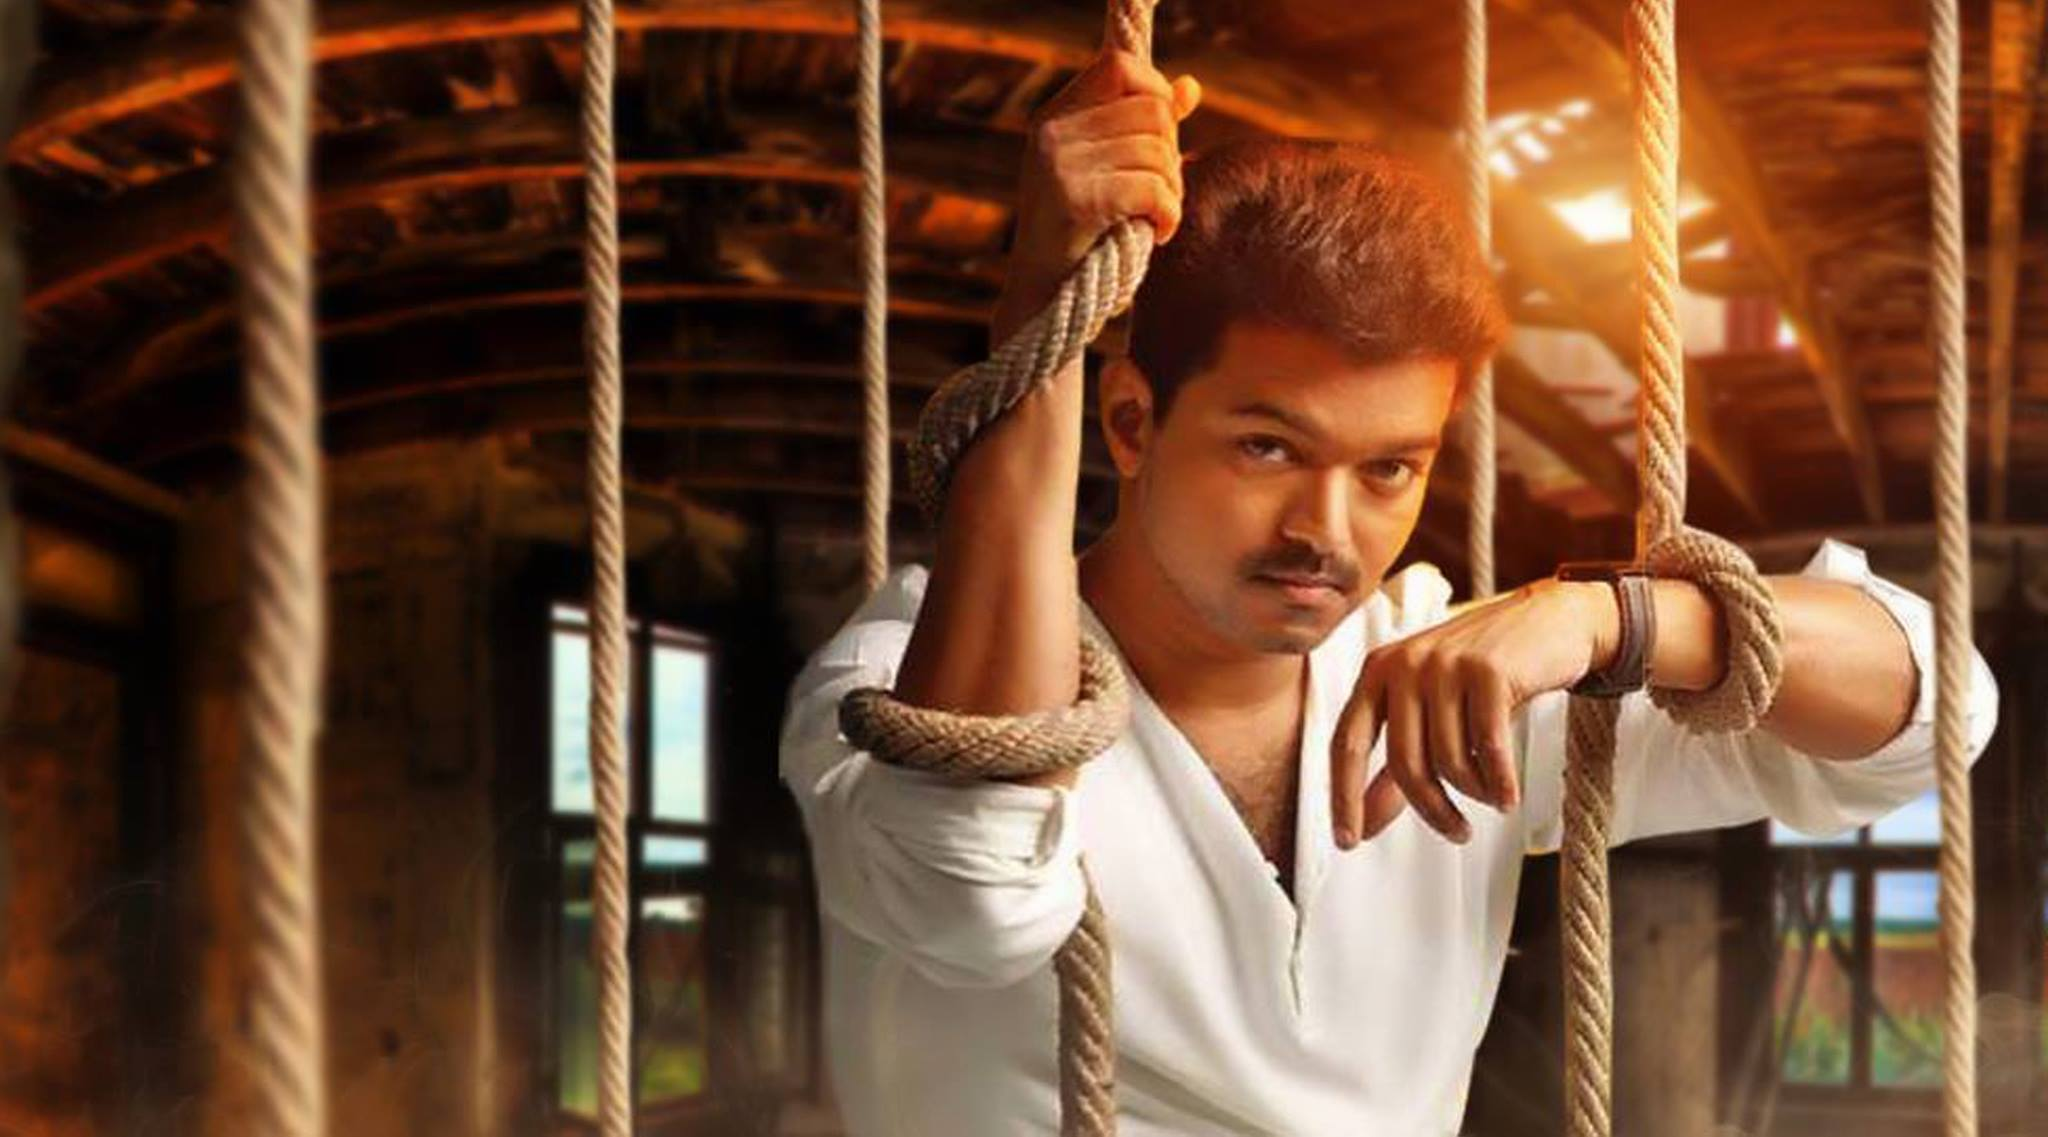 Free Hd Ilayathalapathi Vijay Mobile Desktop Download Wallpapers Images